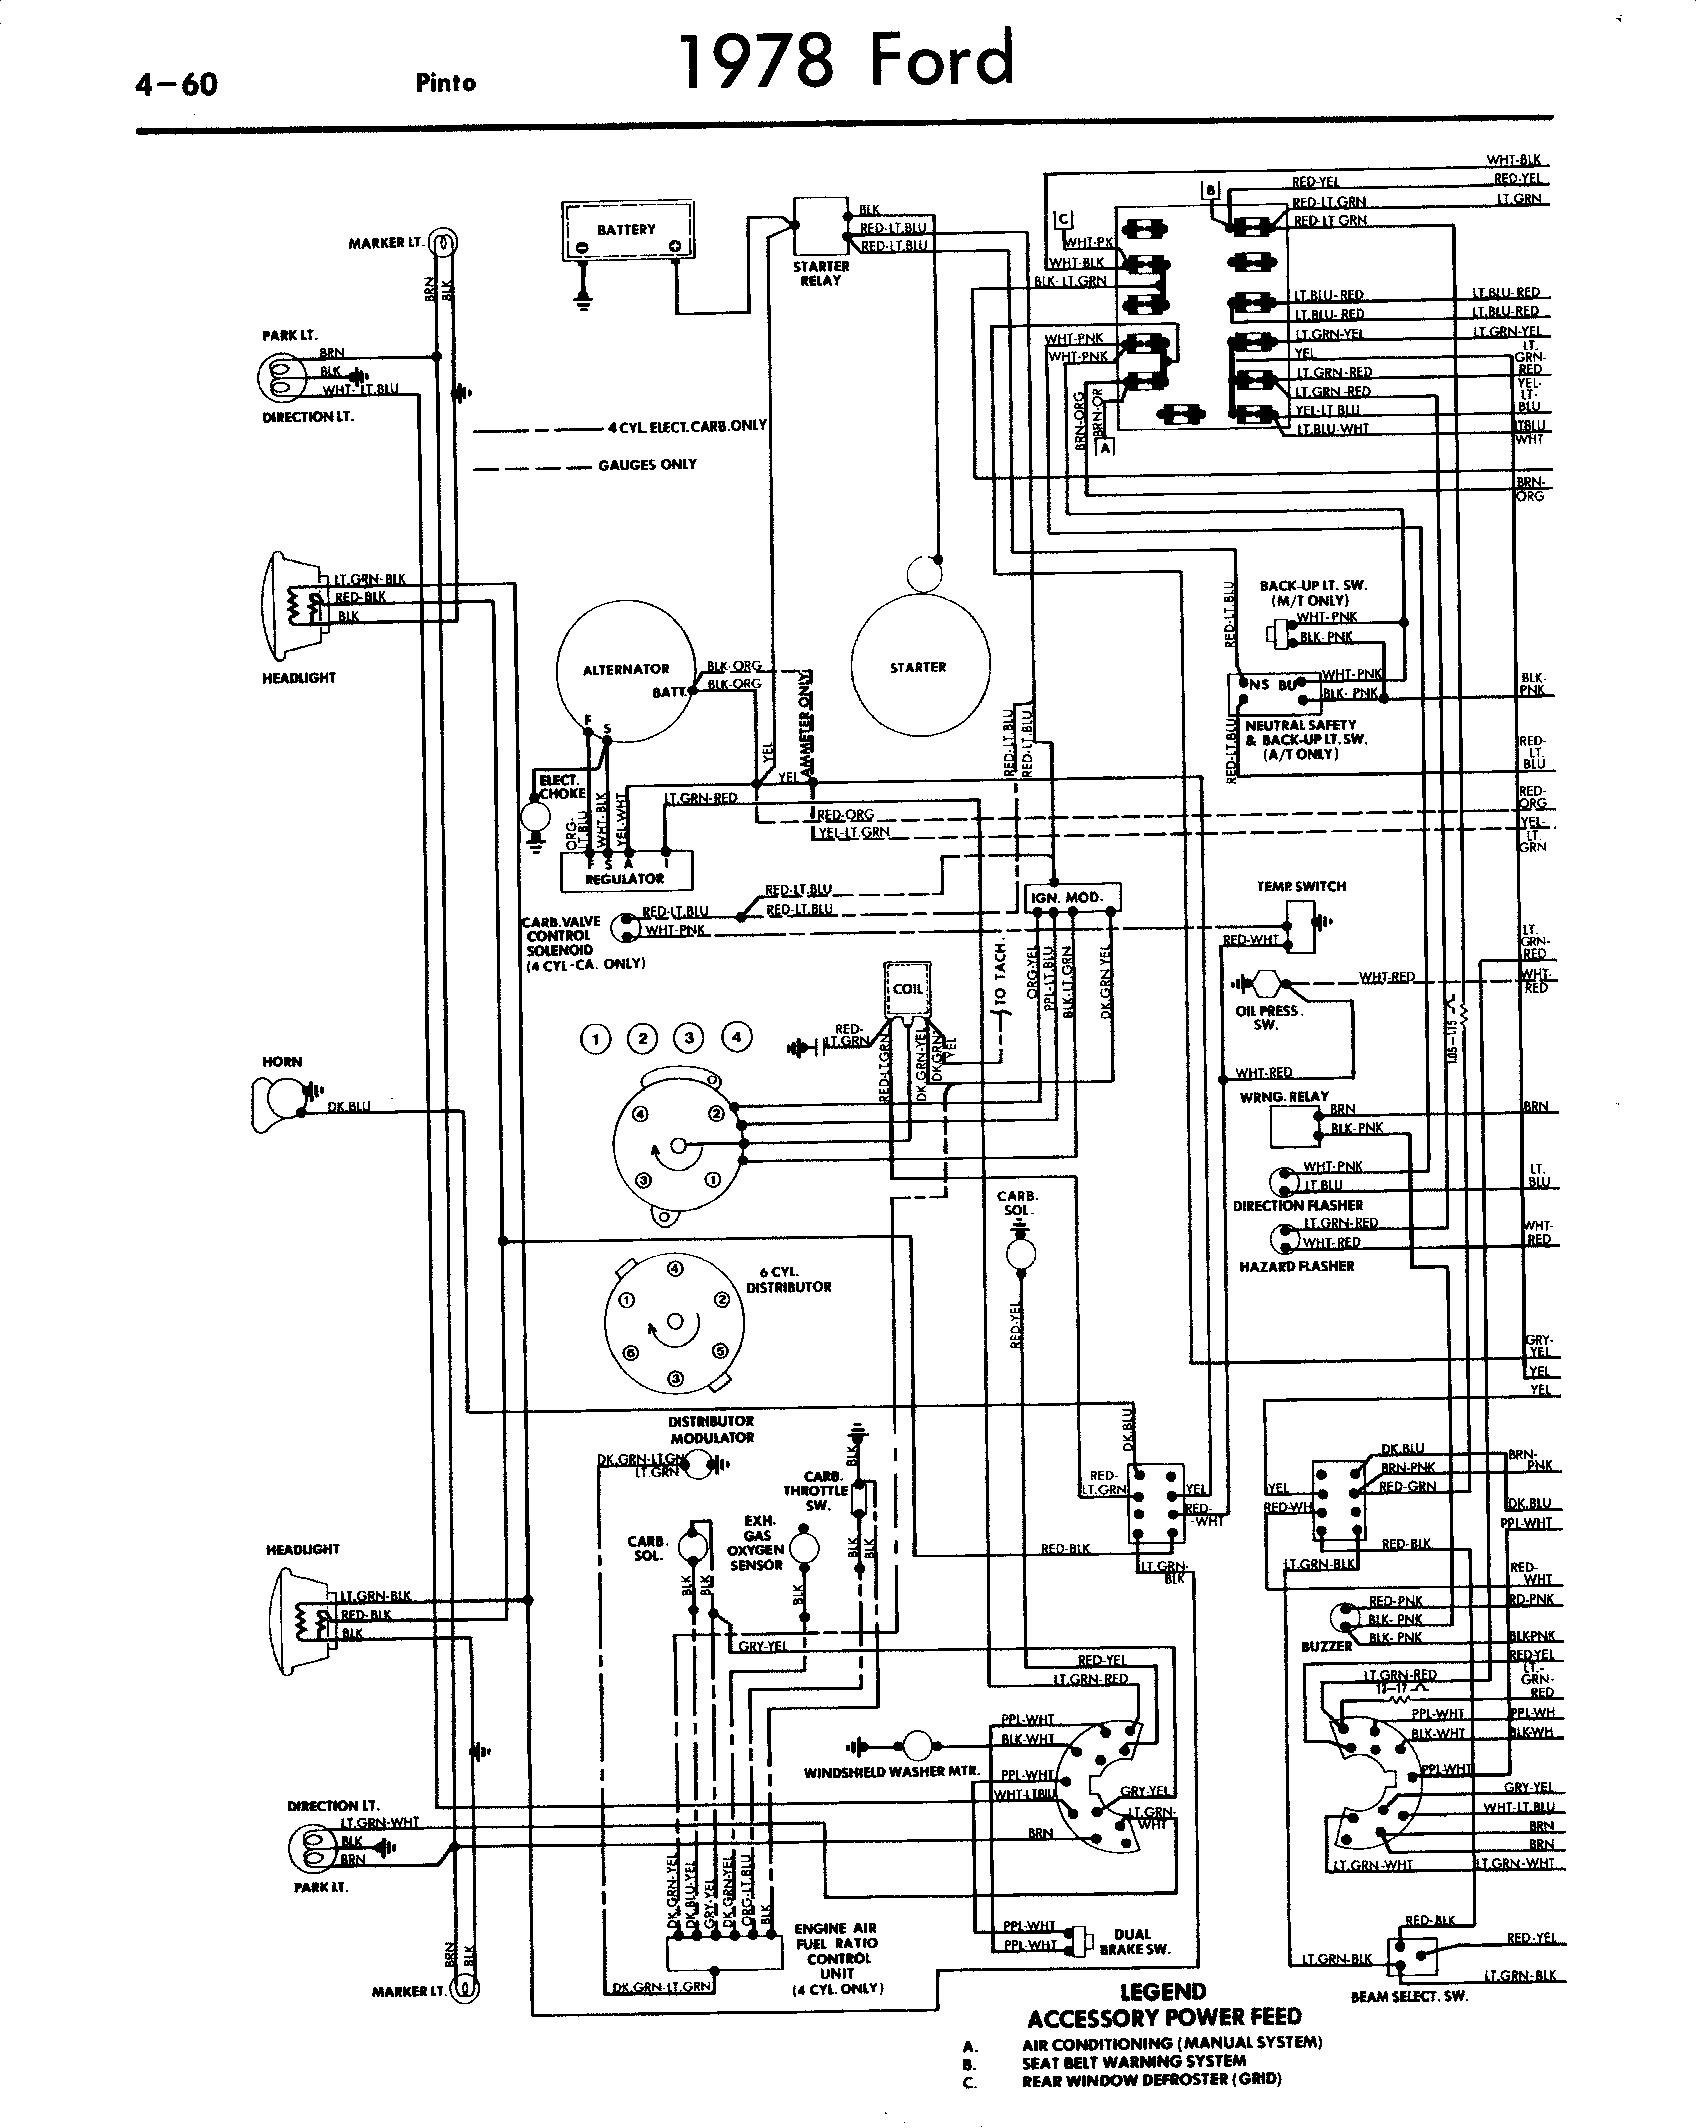 Ford Coyote 5 0 Engine Diagram Wiring Library F150 1995 01 7 3 Wire Info